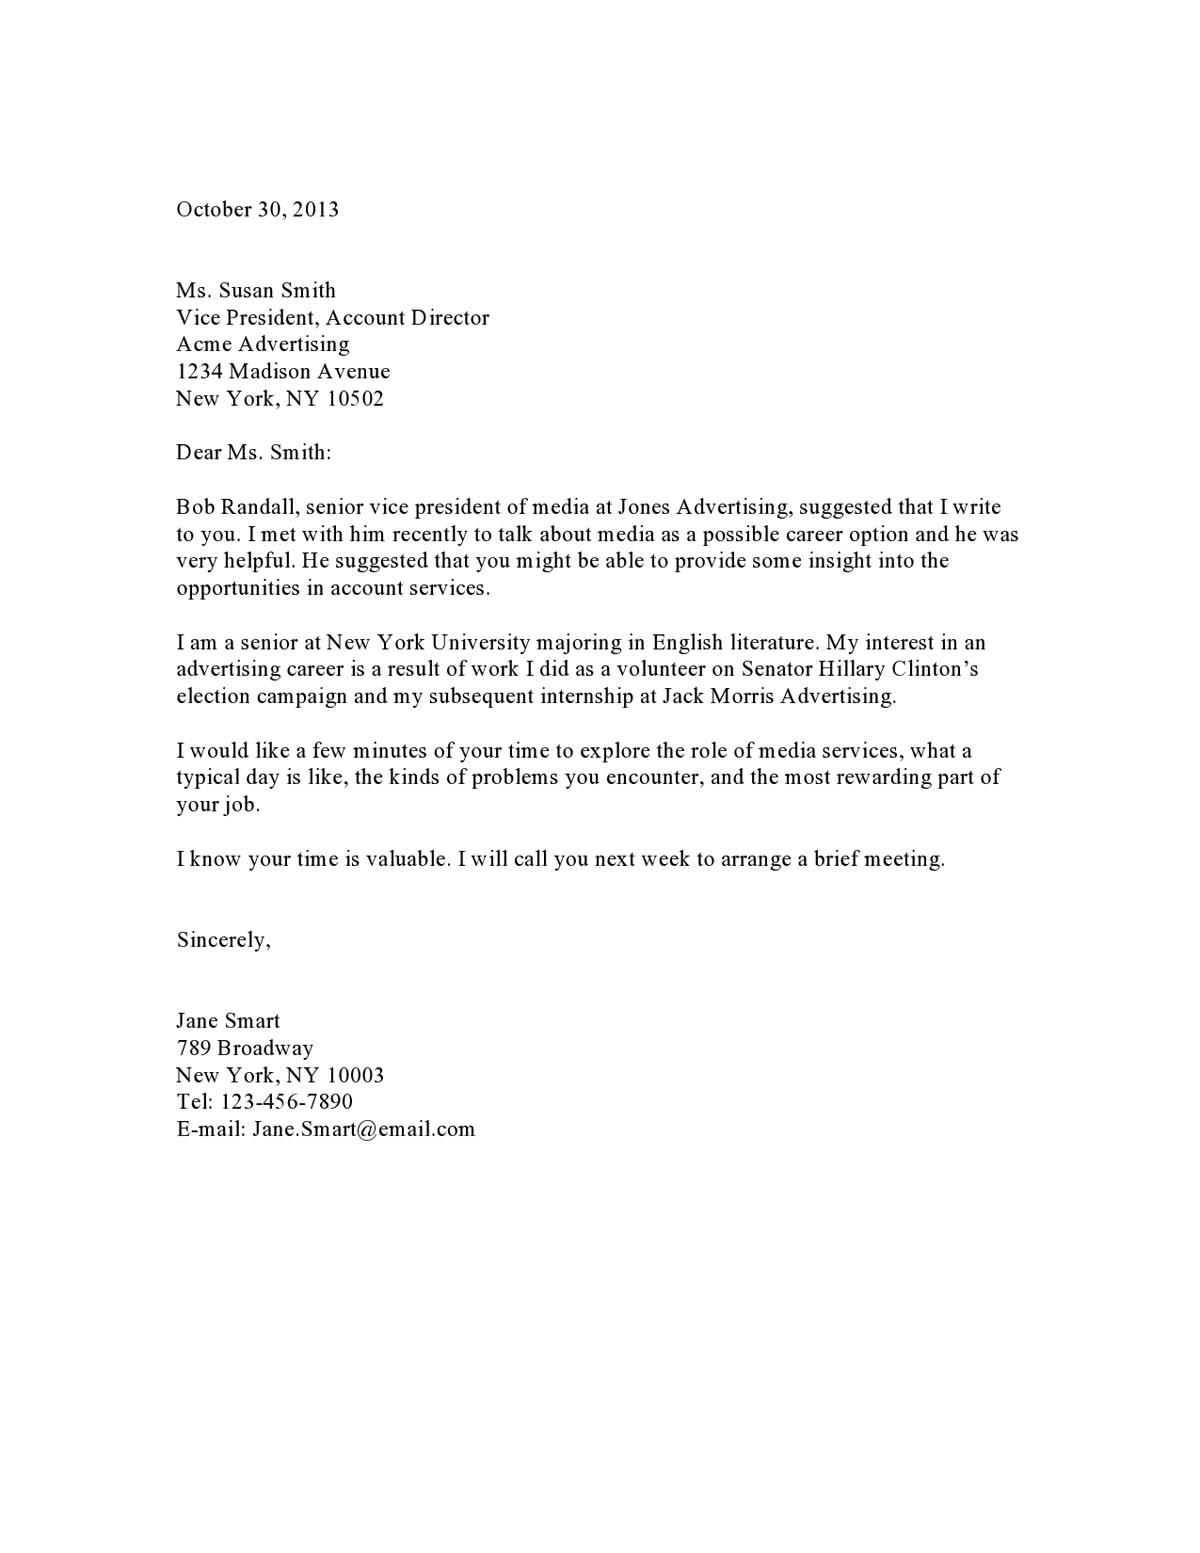 Sample cover letter for applying a job for Cover letter for community service worker